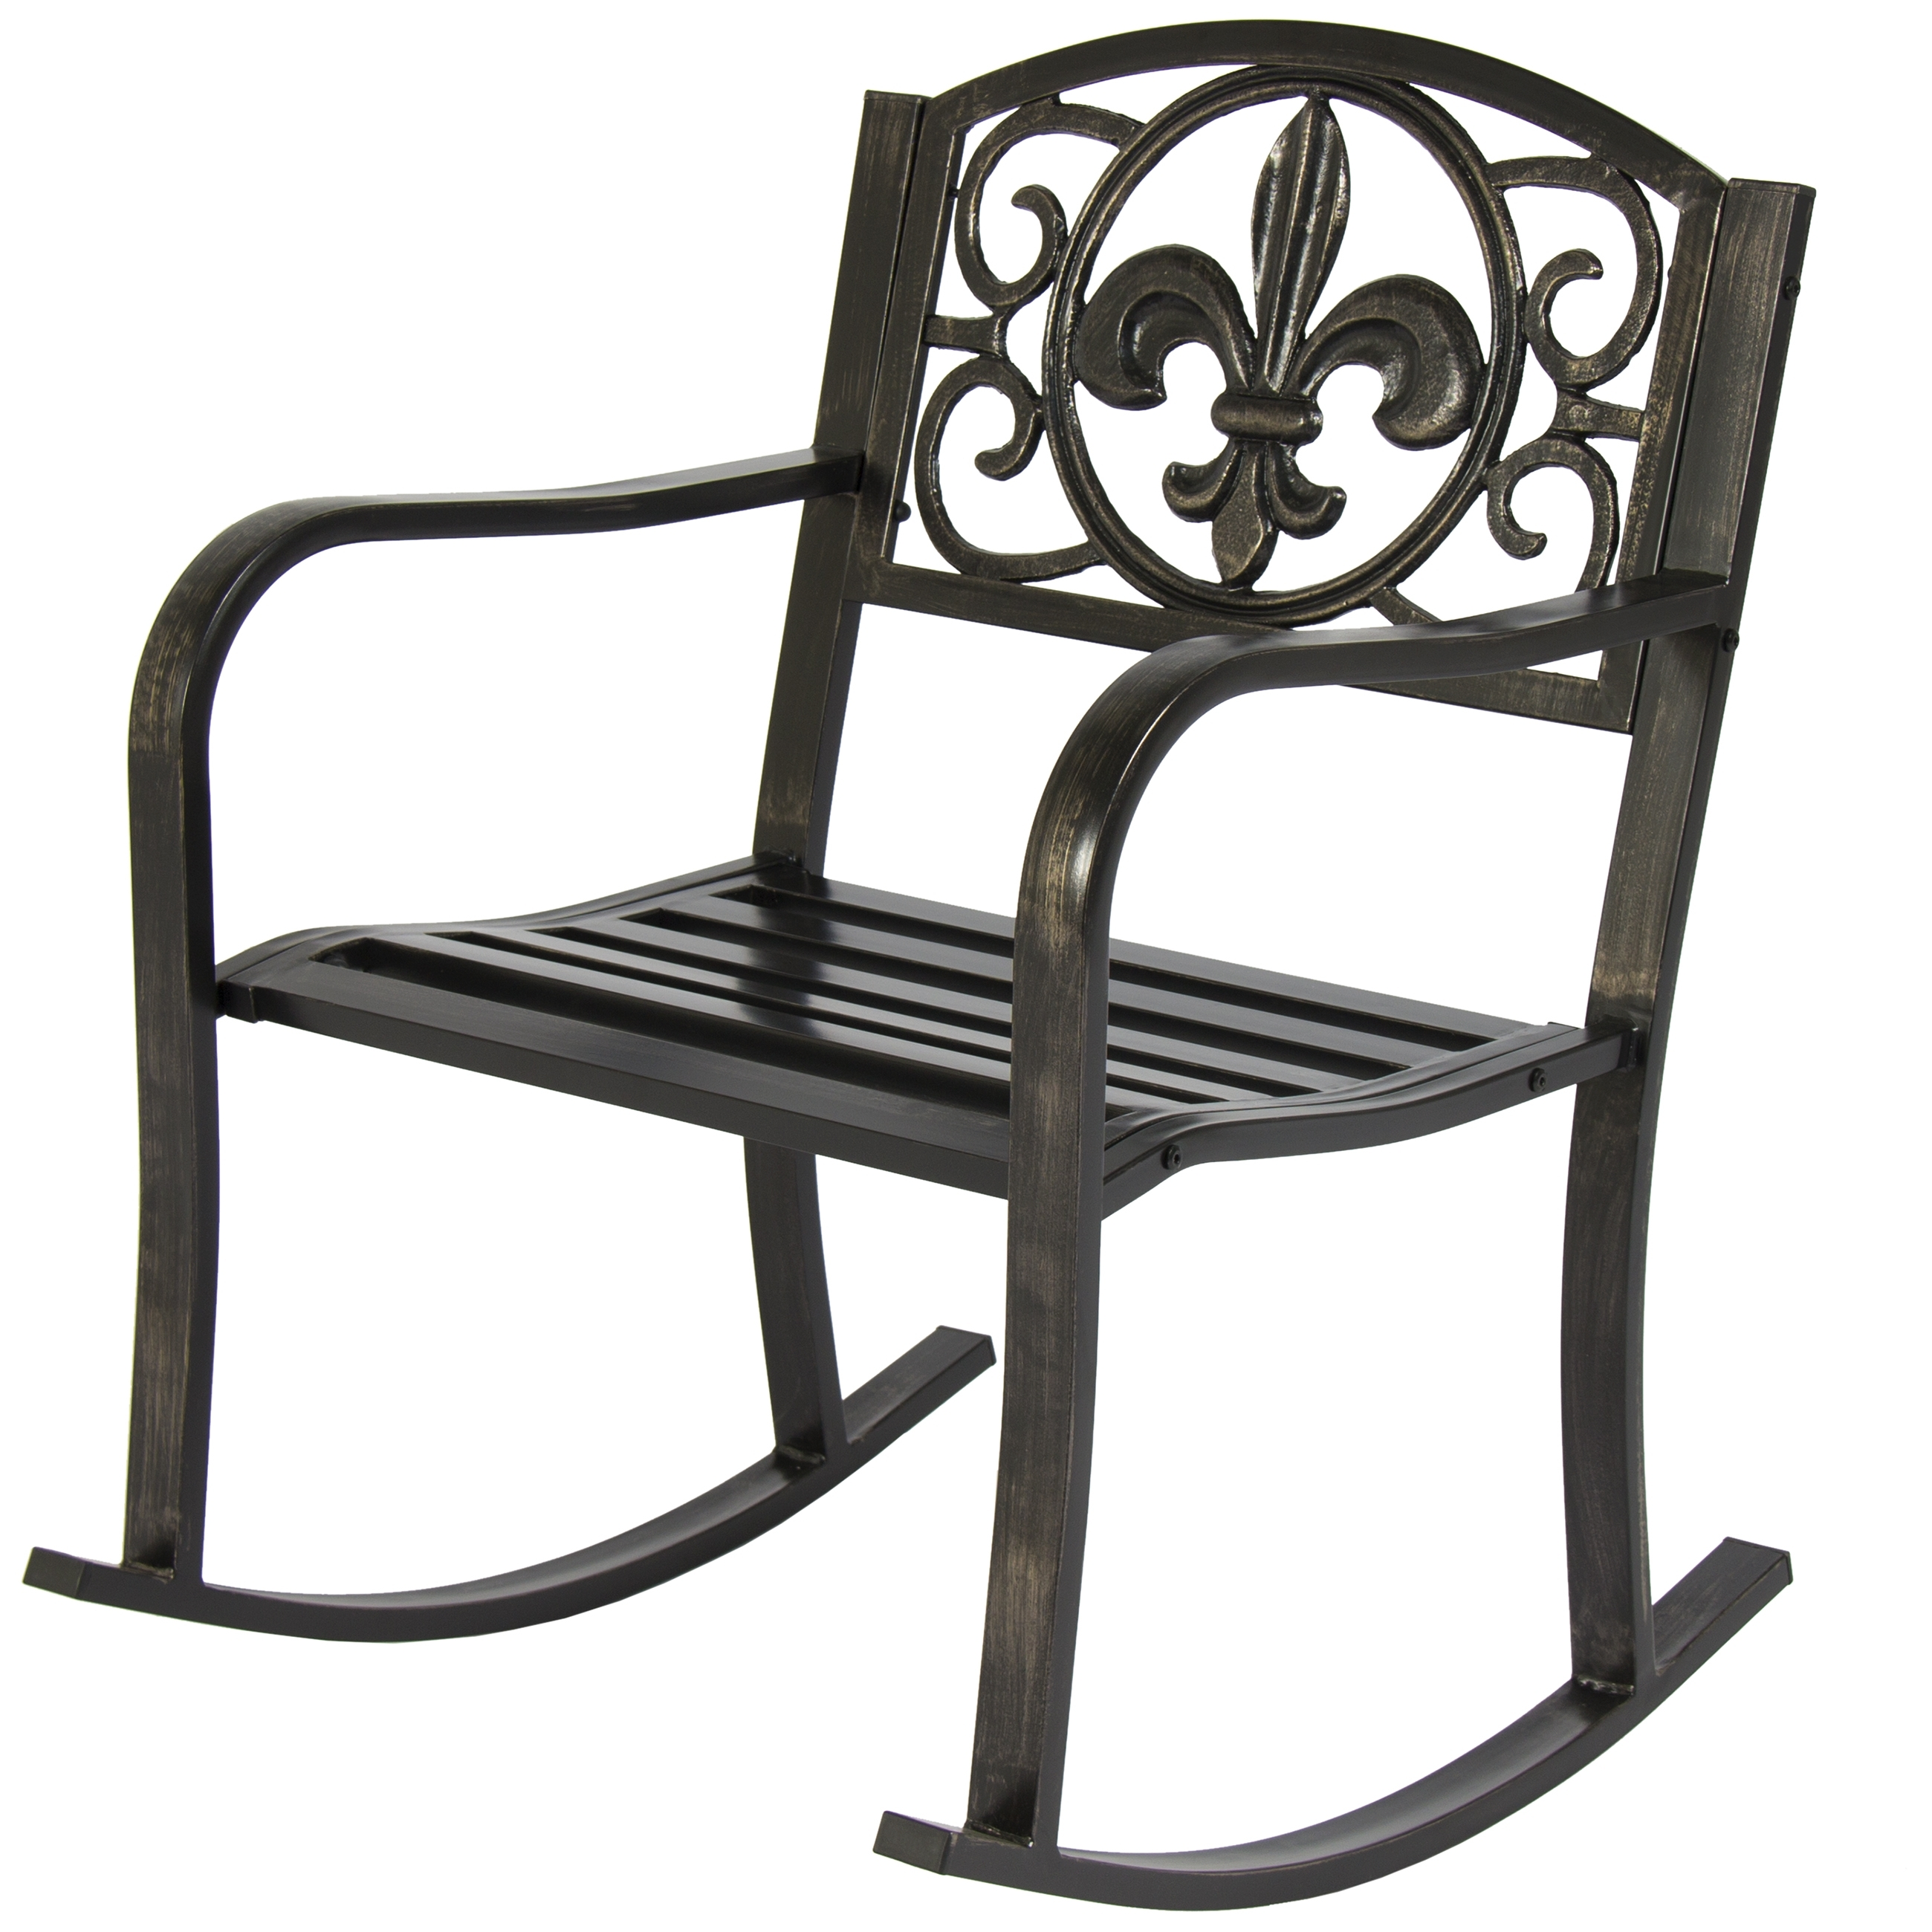 Famous Best Choice Products Metal Rocking Chair Seat For Patio, Porch, Deck For Inexpensive Patio Rocking Chairs (View 12 of 15)